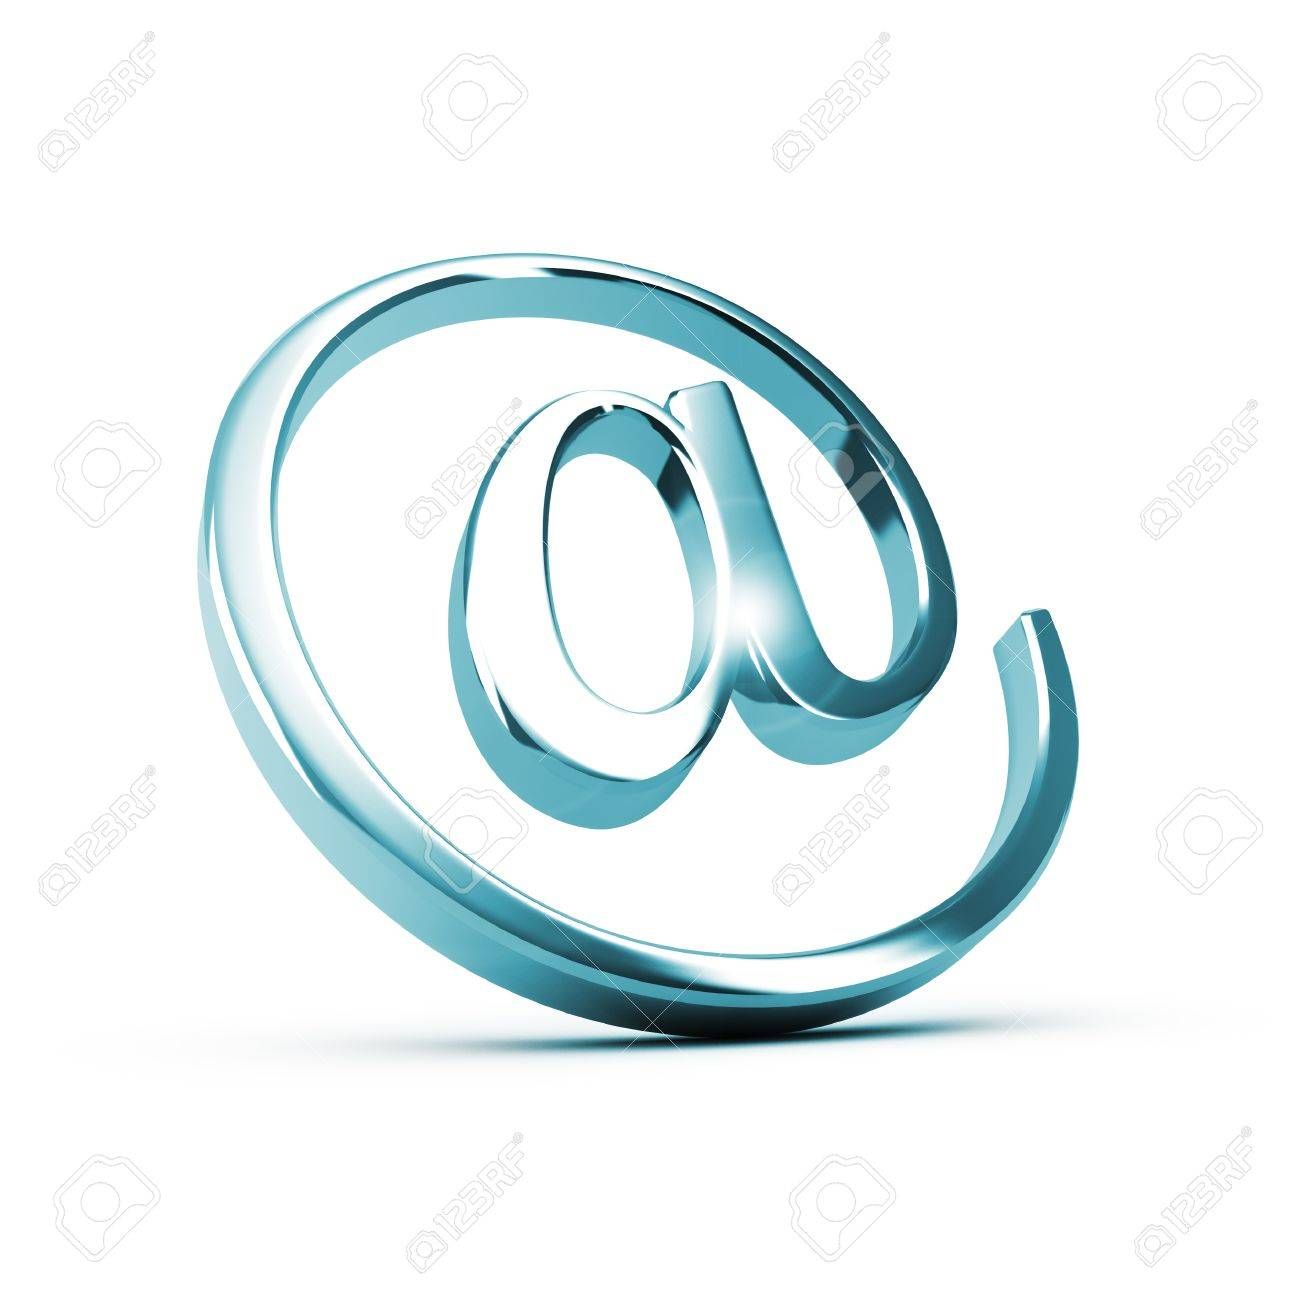 metallic E-mail symbol over white background, blue tone, suitable for contact or address form Stock Photo - 21398015